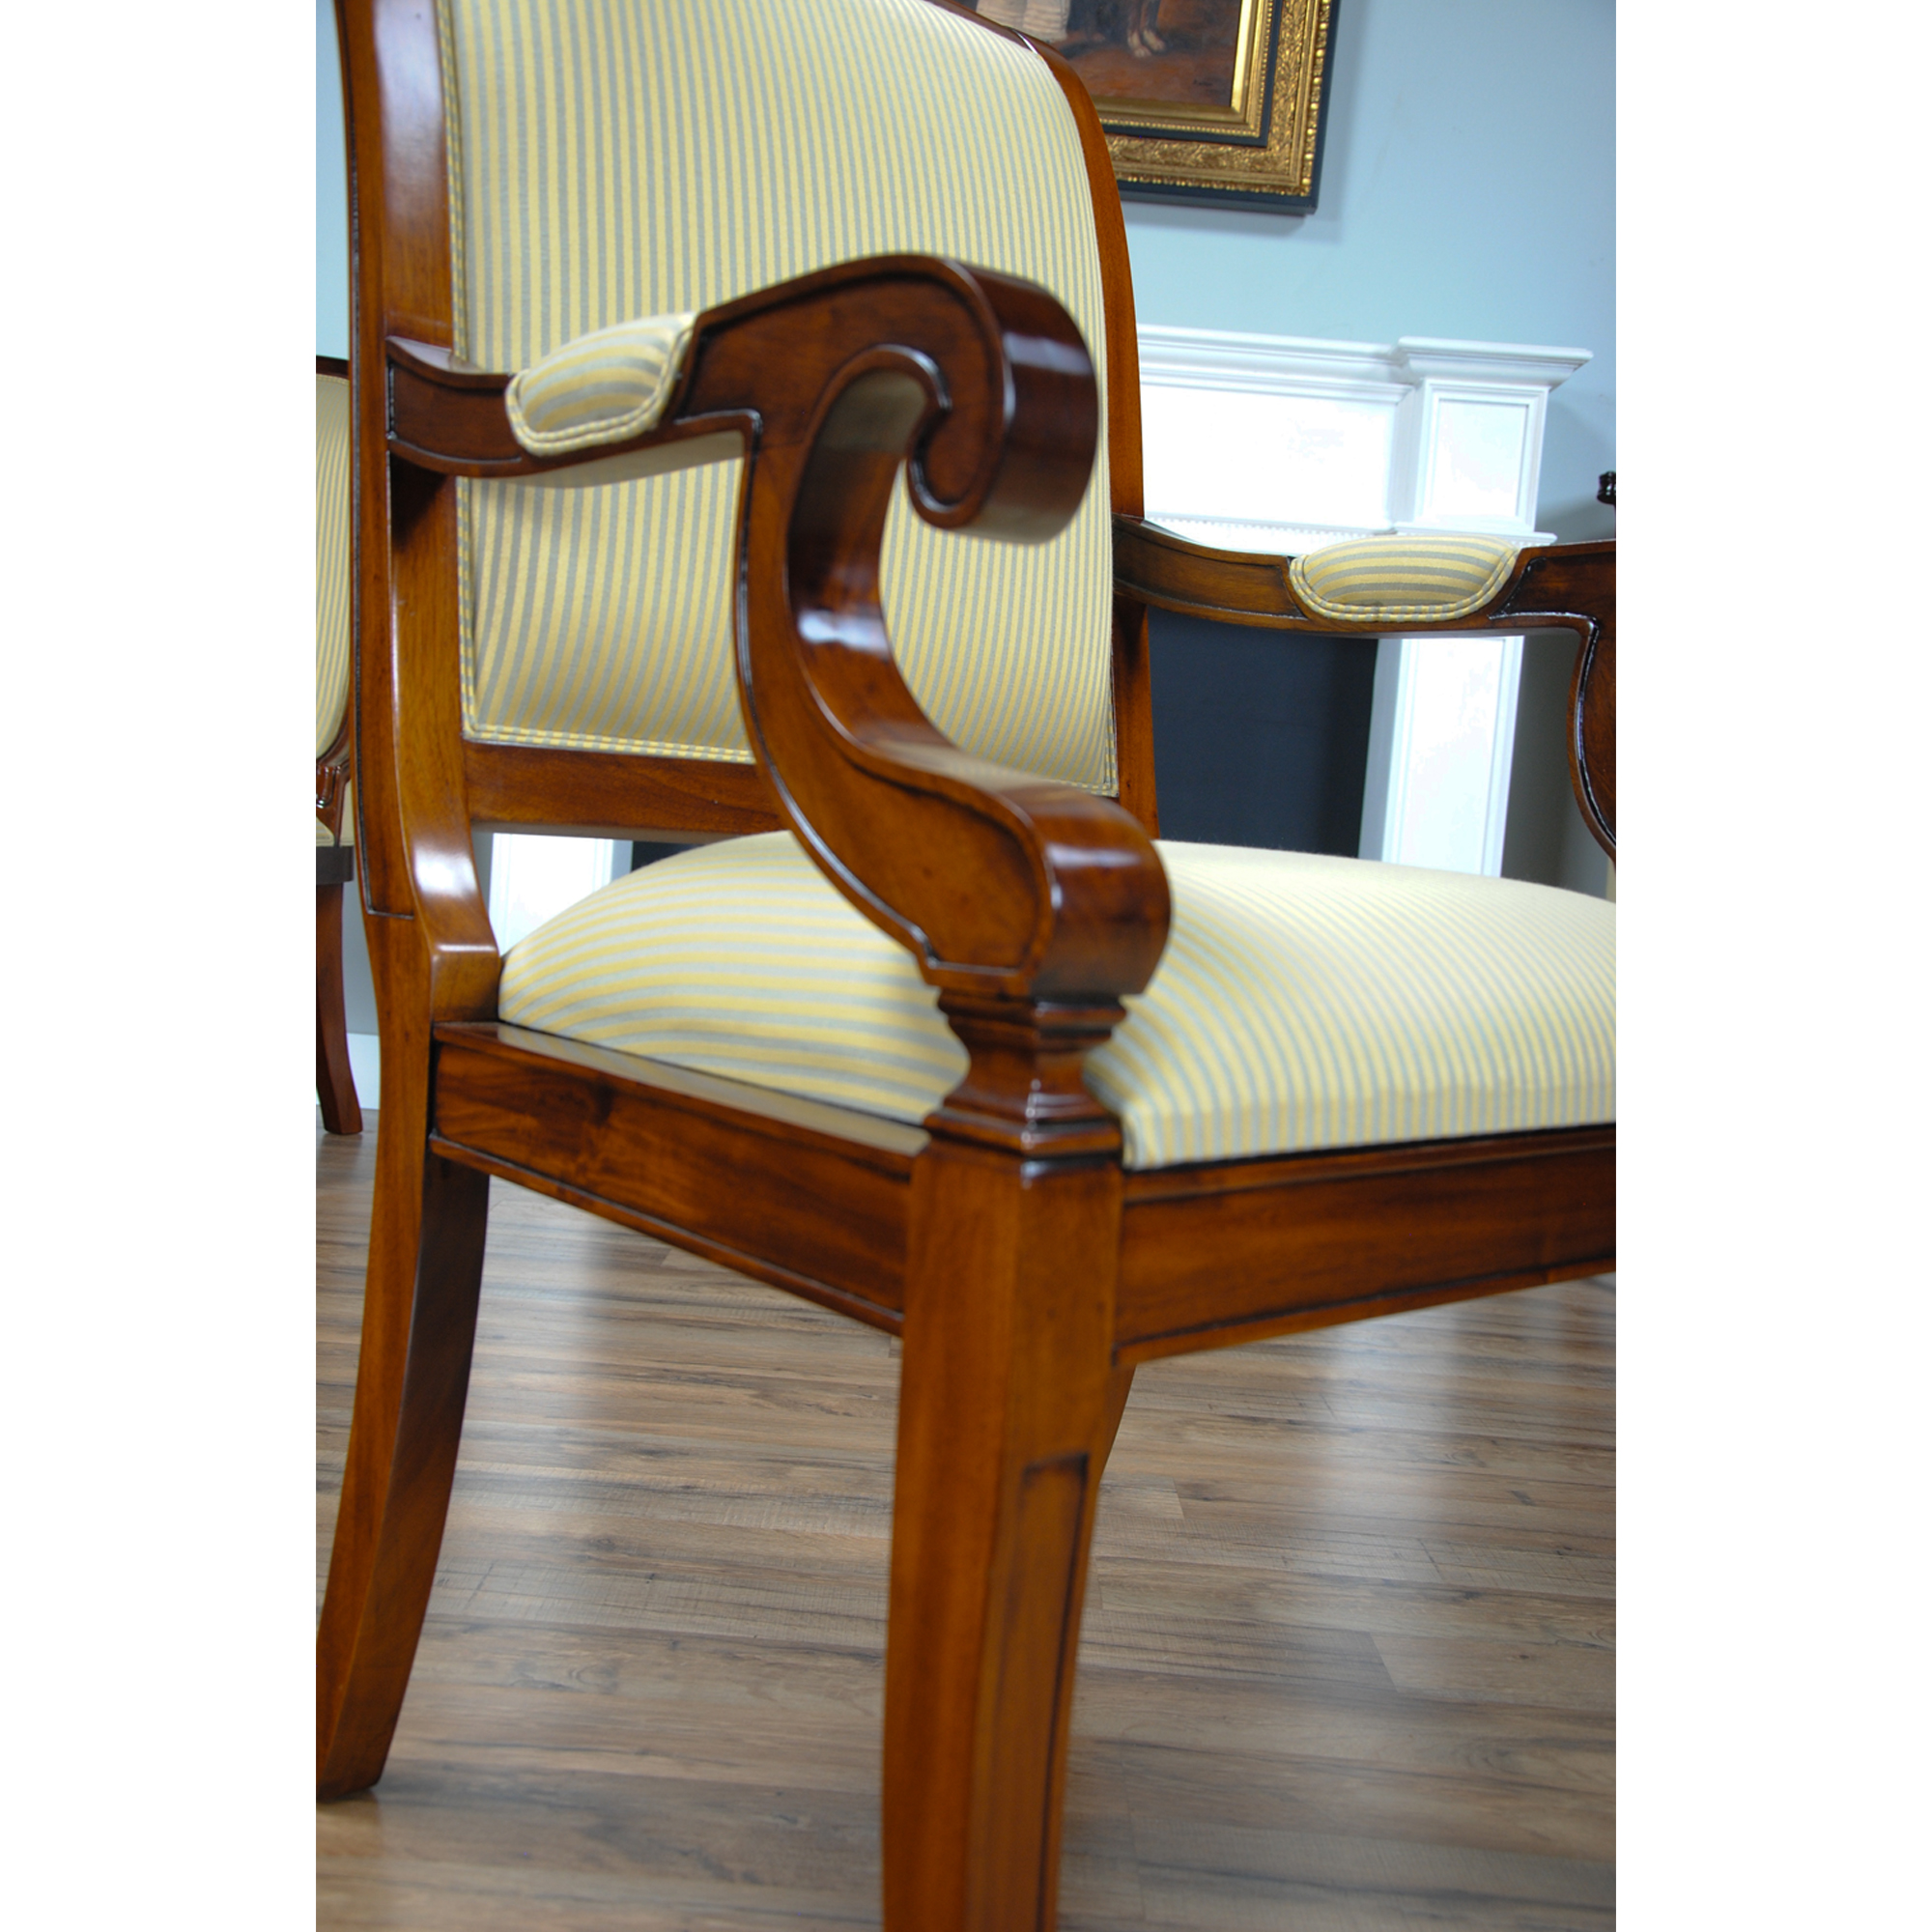 Regency Upholstered Dining Chair Niagara Furniture Solid Mahogany